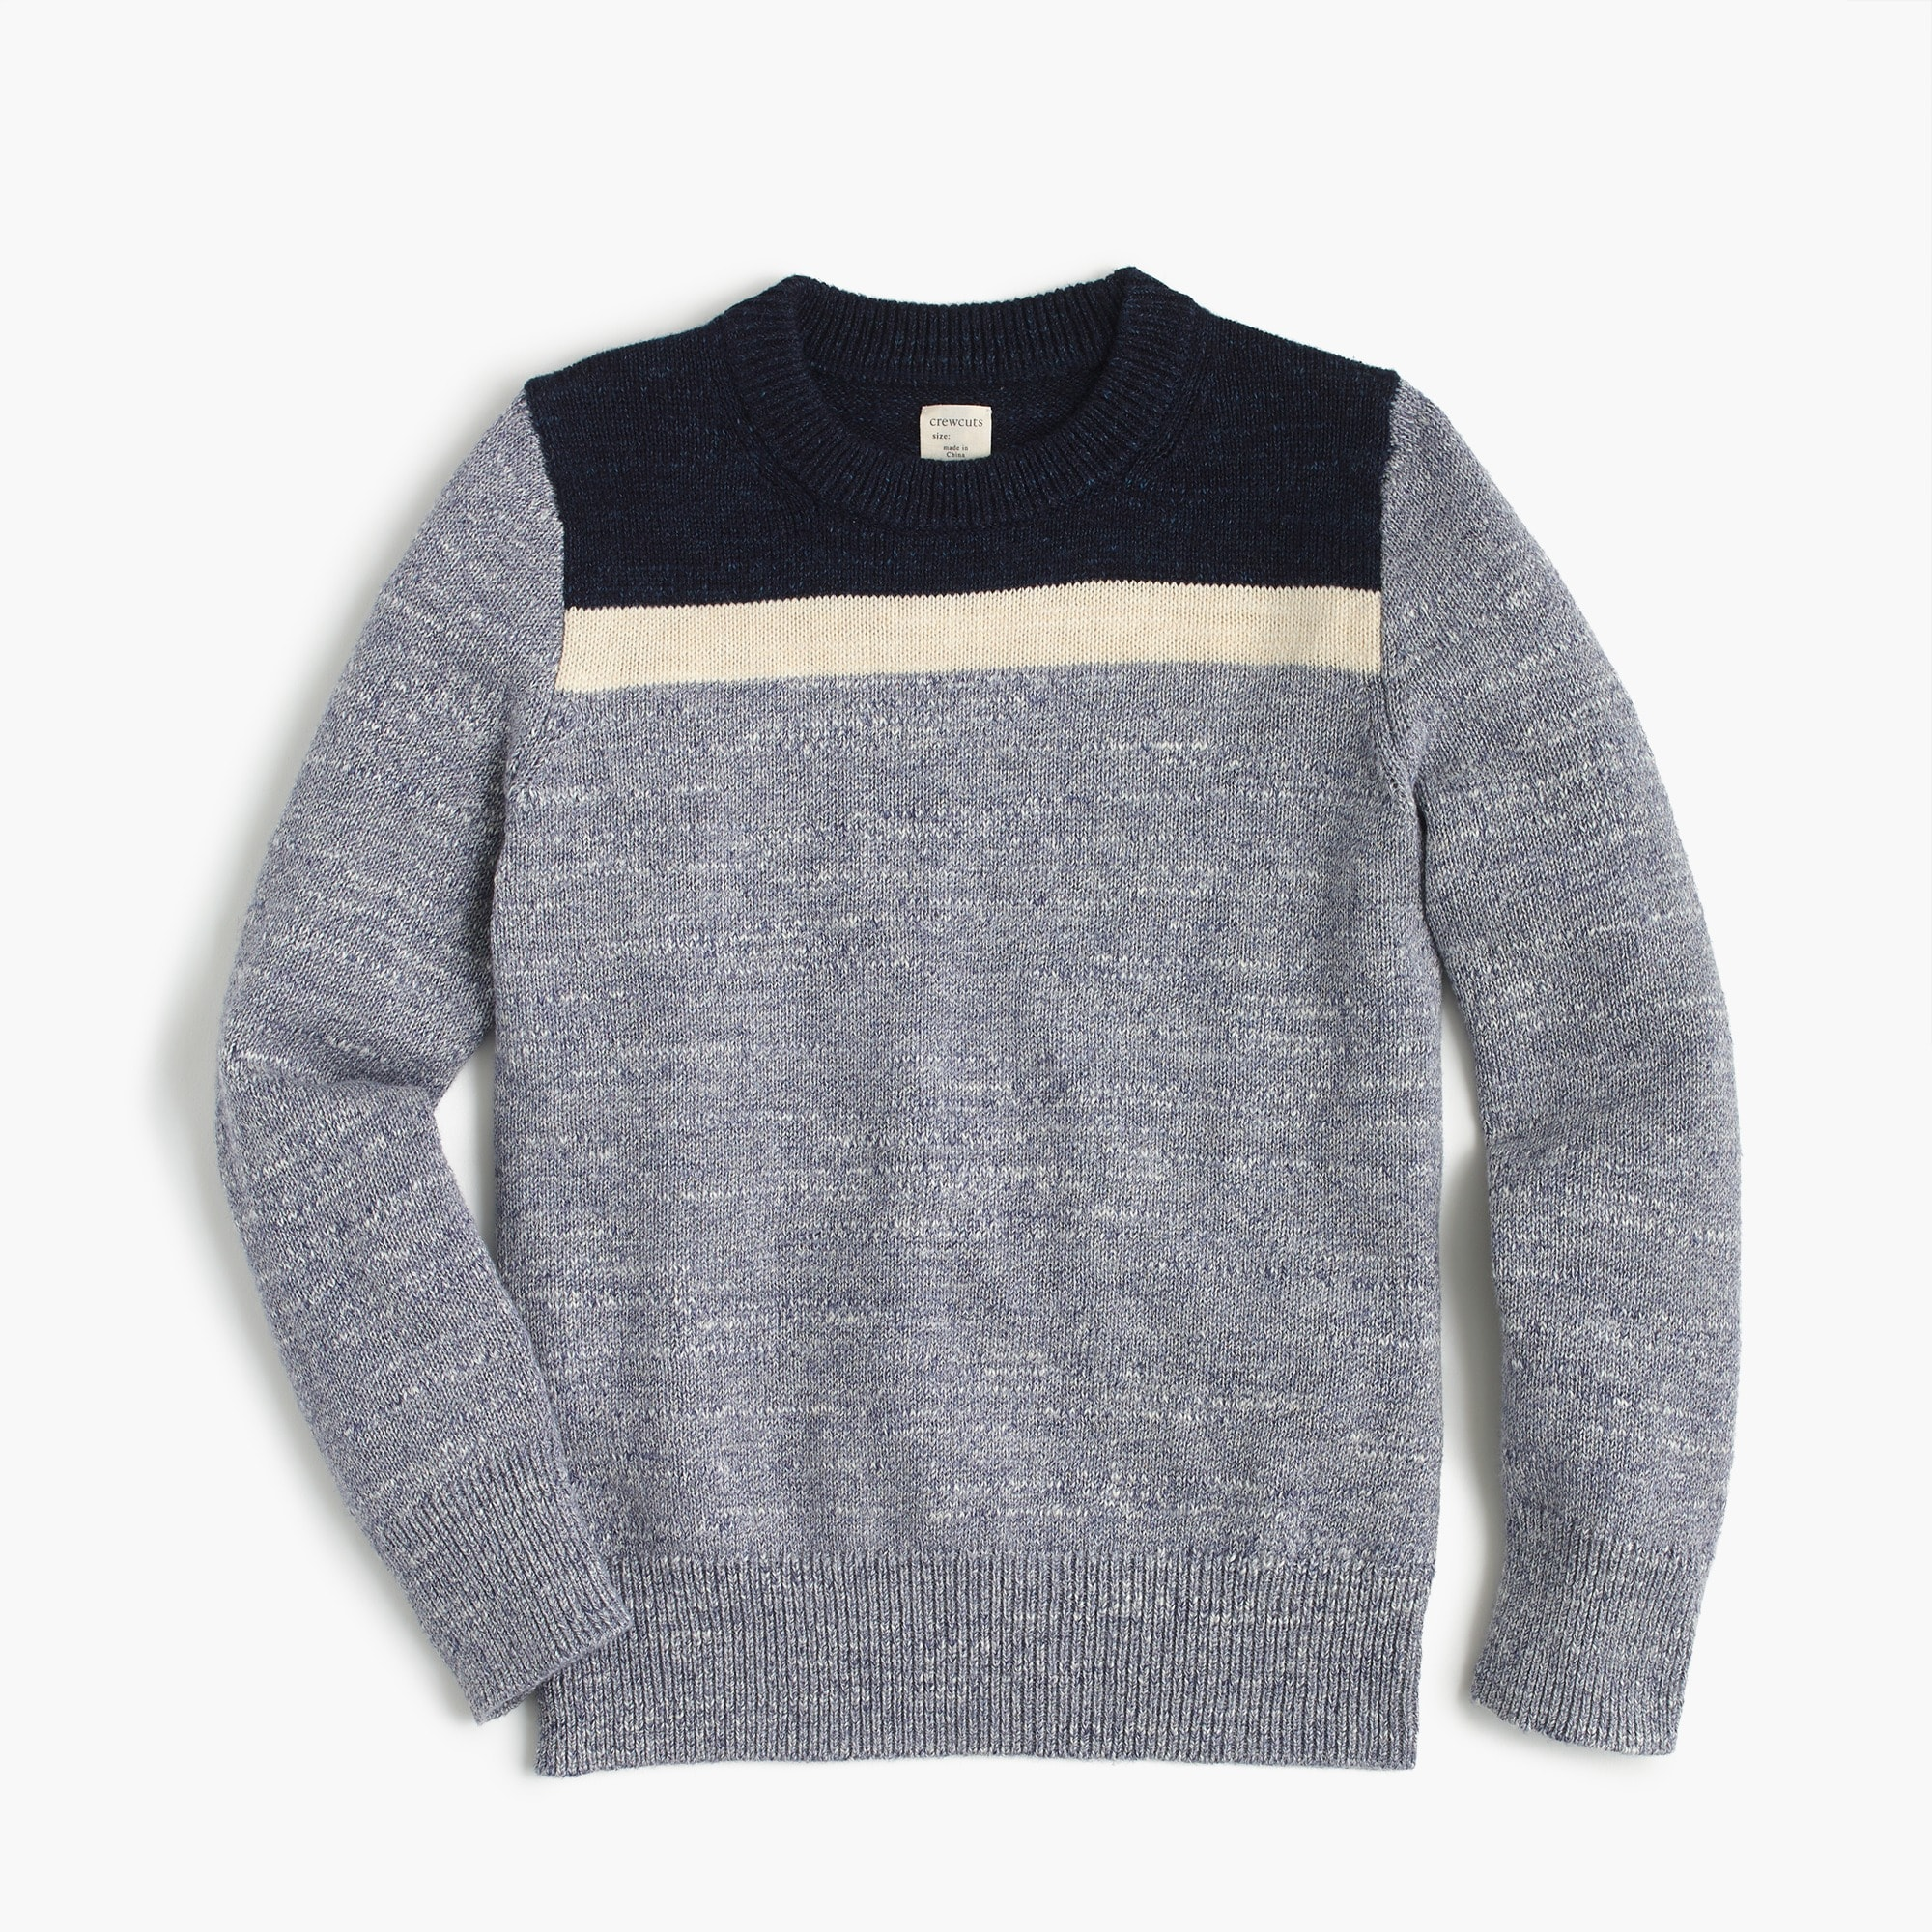 Boys' colorblocked cotton crewneck sweater boy new arrivals c